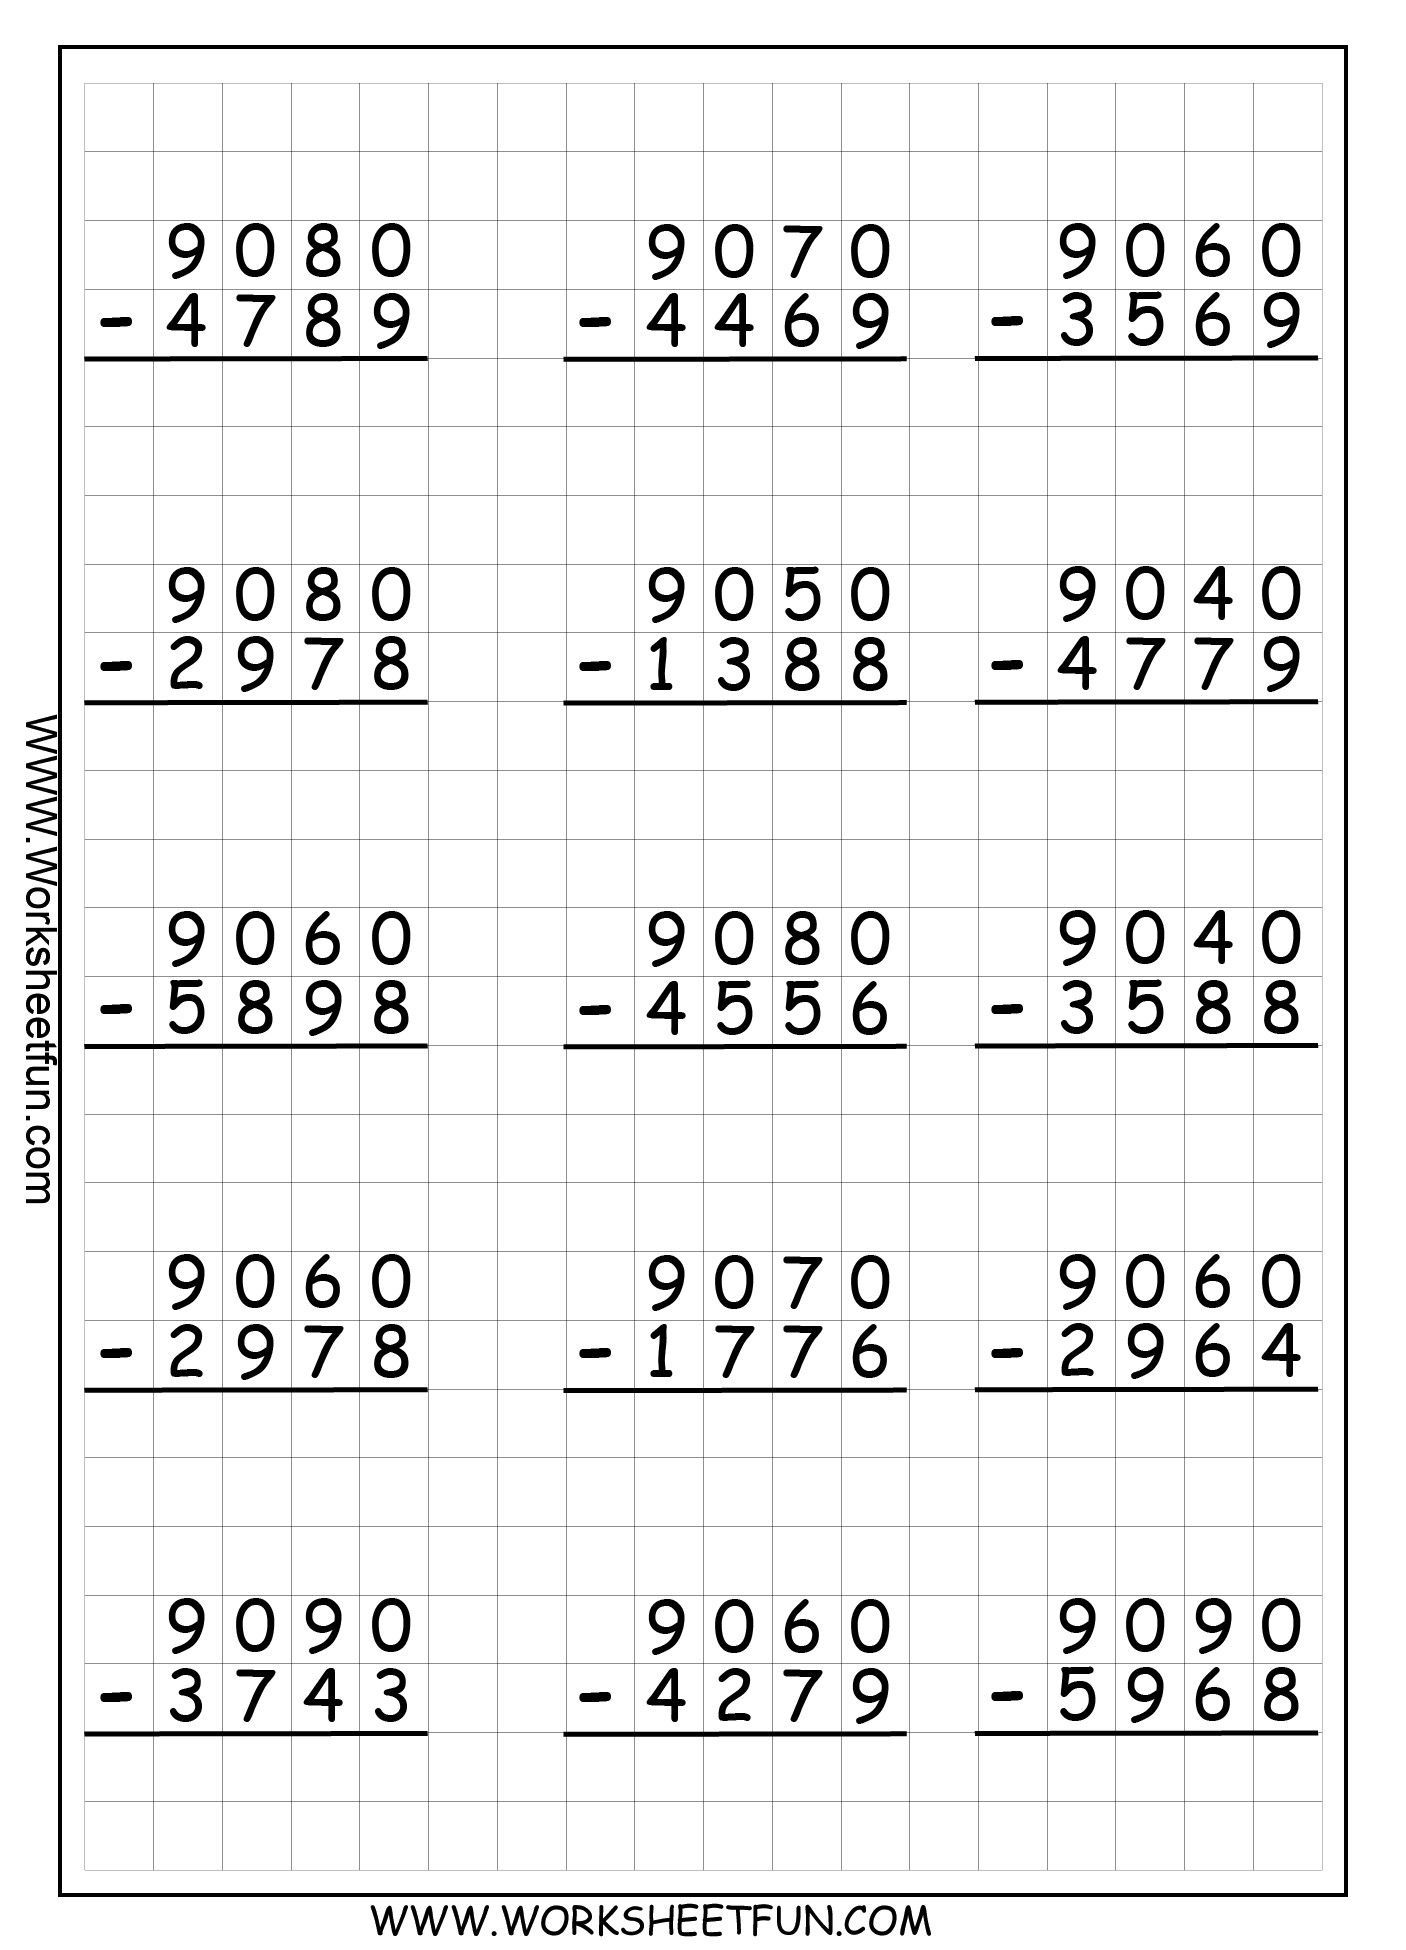 5 Free Math Worksheets First Grade 1 Subtraction Subtracting 1 Digit From 2 Digit No Math Subtraction Free Math Worksheets Addition And Subtraction Worksheets [ 1950 x 1406 Pixel ]